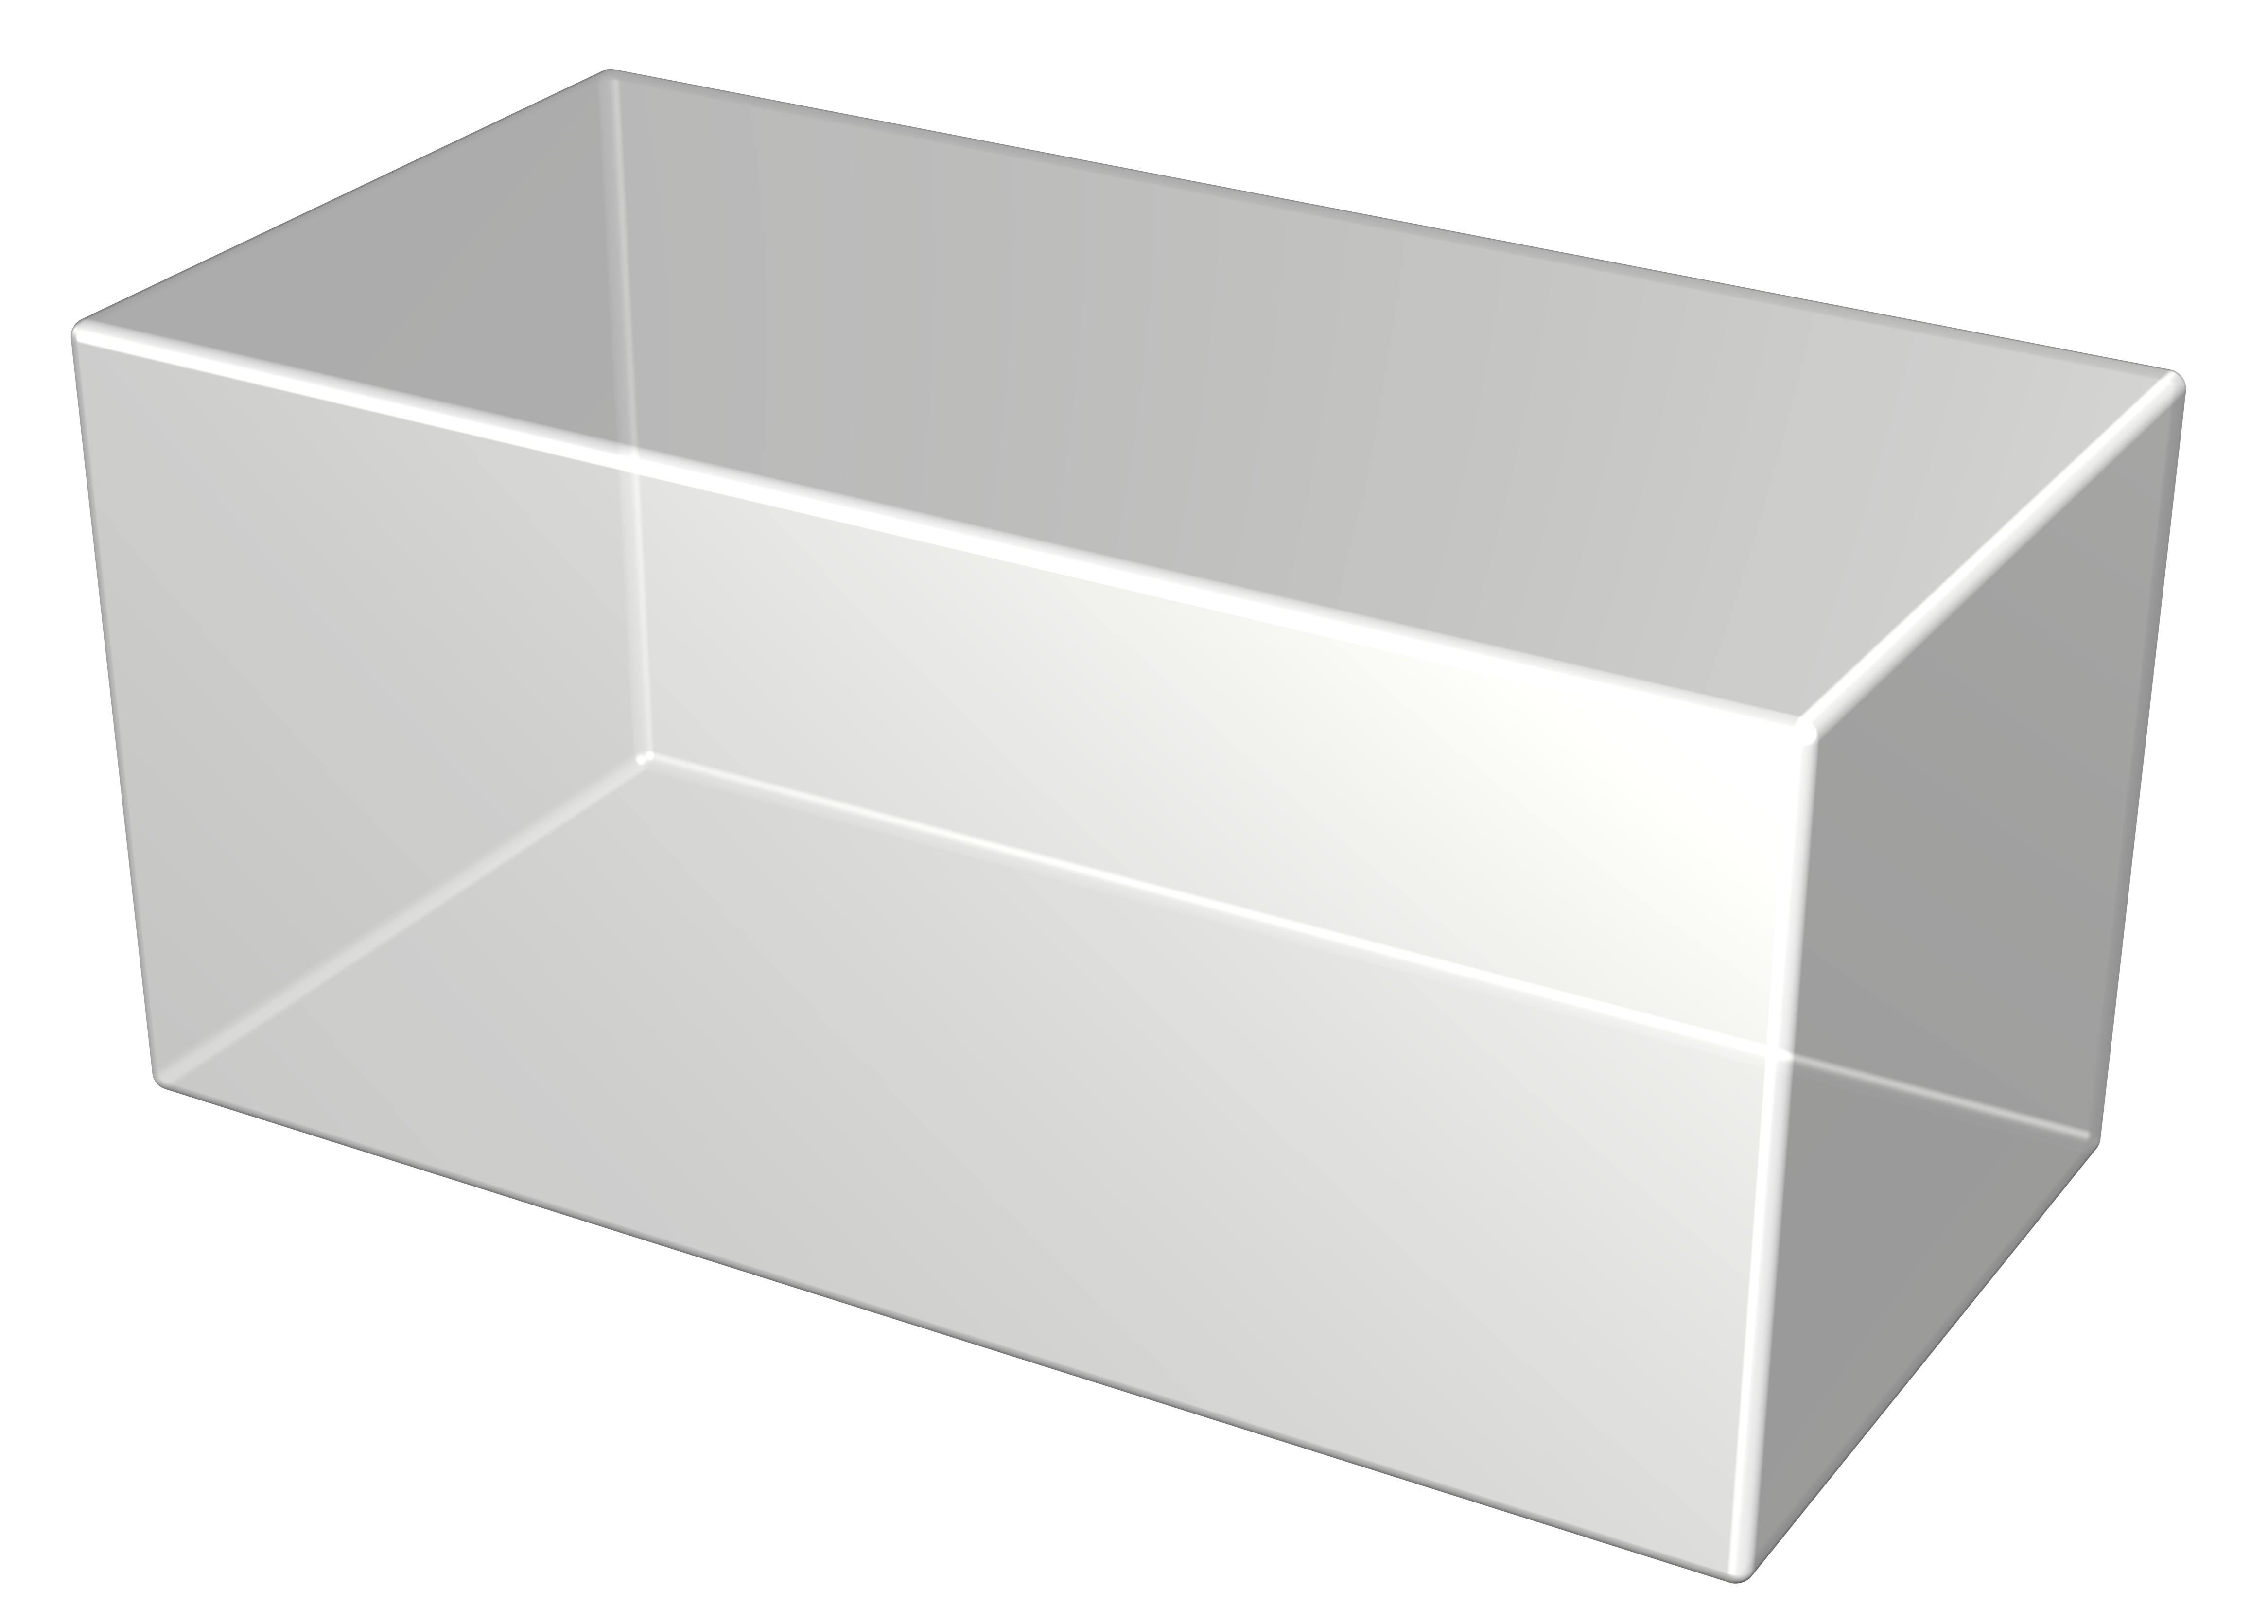 gray 3d rectangle with transparency